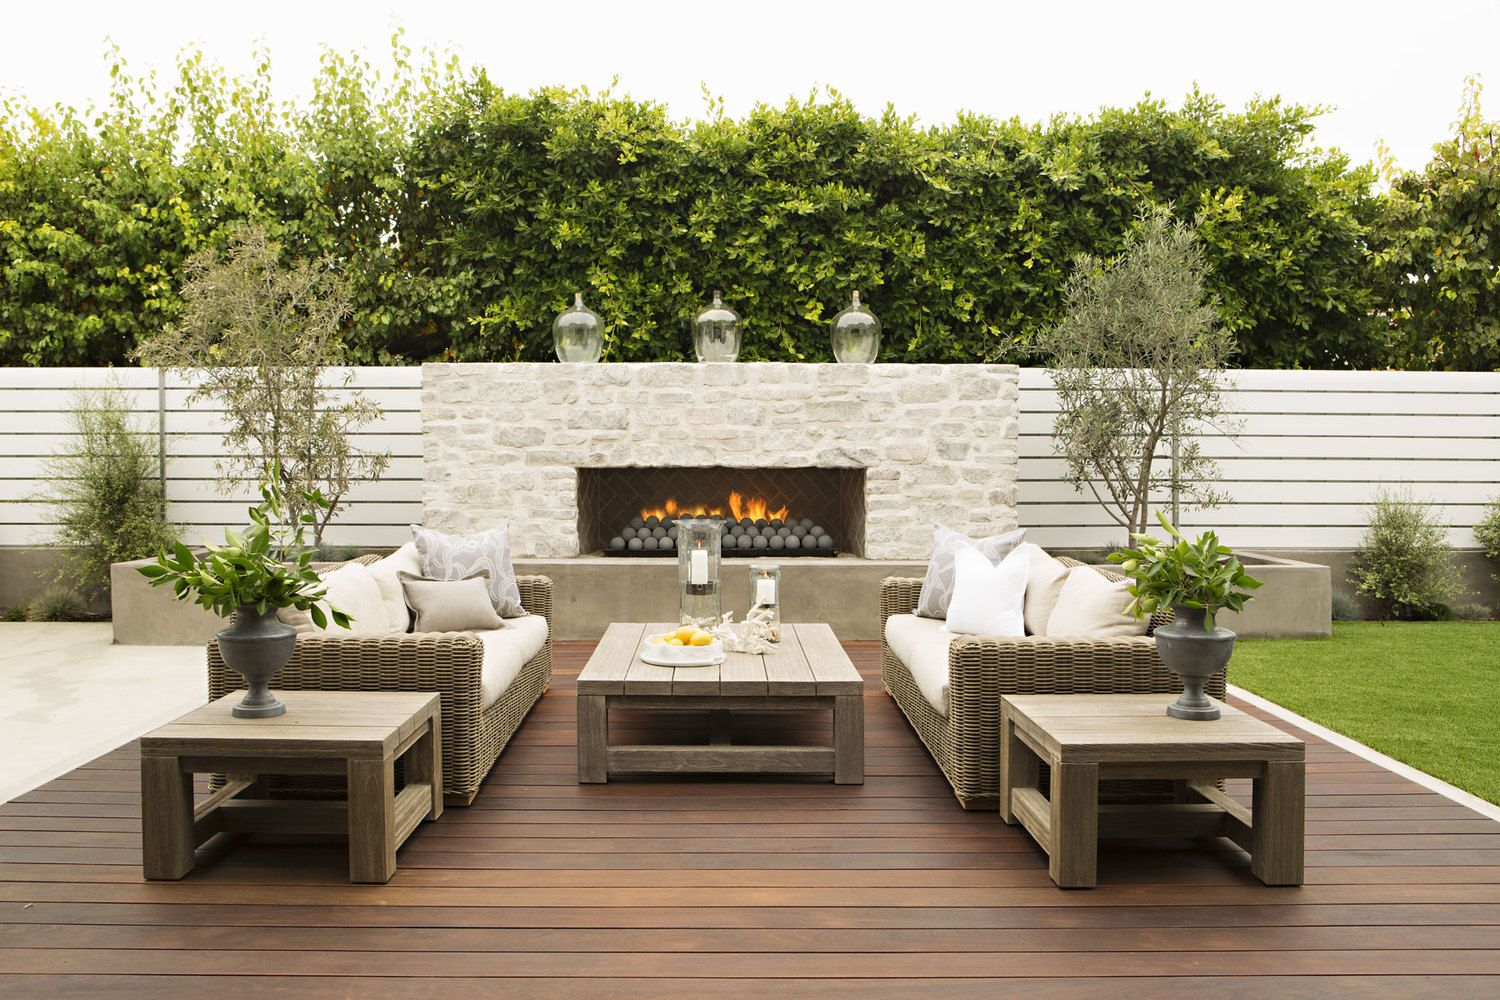 Vertical White Fence Outdoor Fireplace In The Wall Clean And